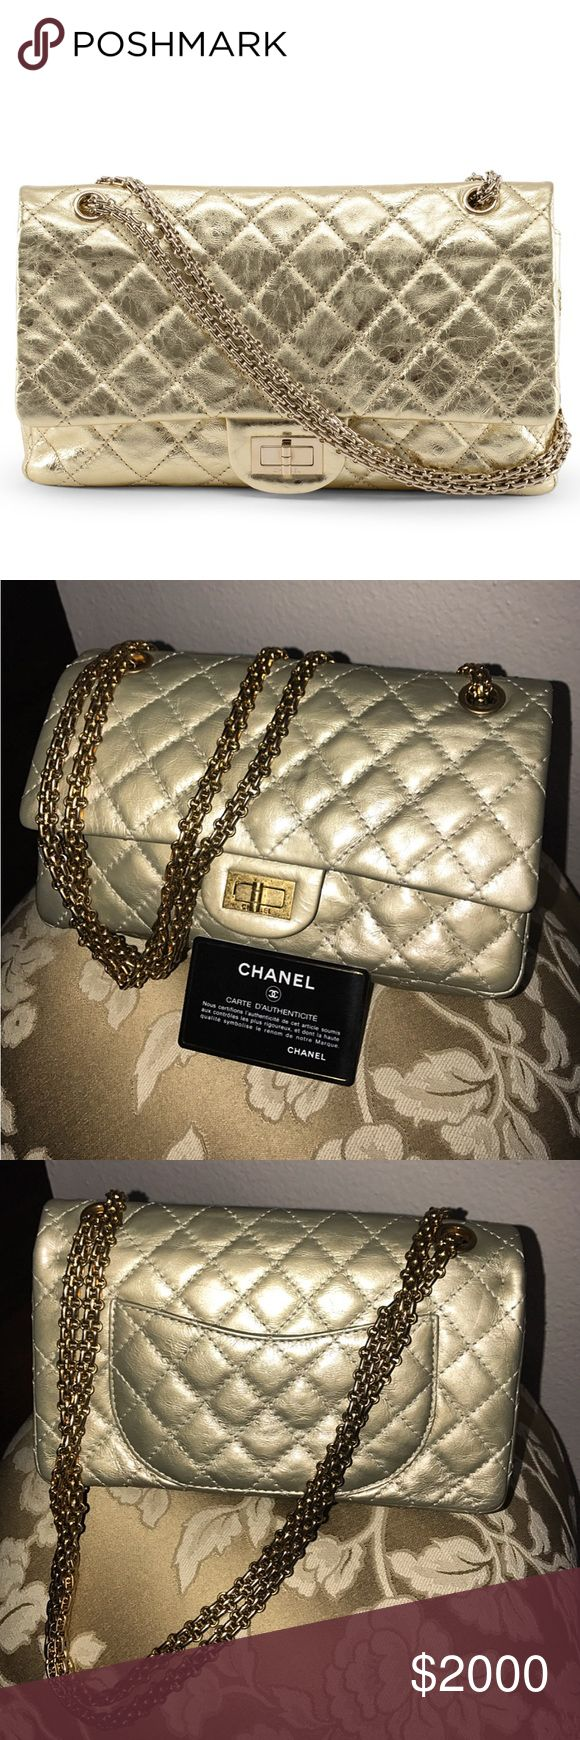 ✨Authentic CHANEL Gold Double Flap Bag ✨Authentic CHANEL Gold Double Flap Bag. Oh, What A Bag! Metallic Gold Guilted Calfskin Crafted Into The 227 Size Double Flap Re-issue Bag Featuring A Mademoiselle Chain & Turn Lock In Matching Gold Hardware. ✨Guaranteed Authentic✨ CHANEL Bags Shoulder Bags